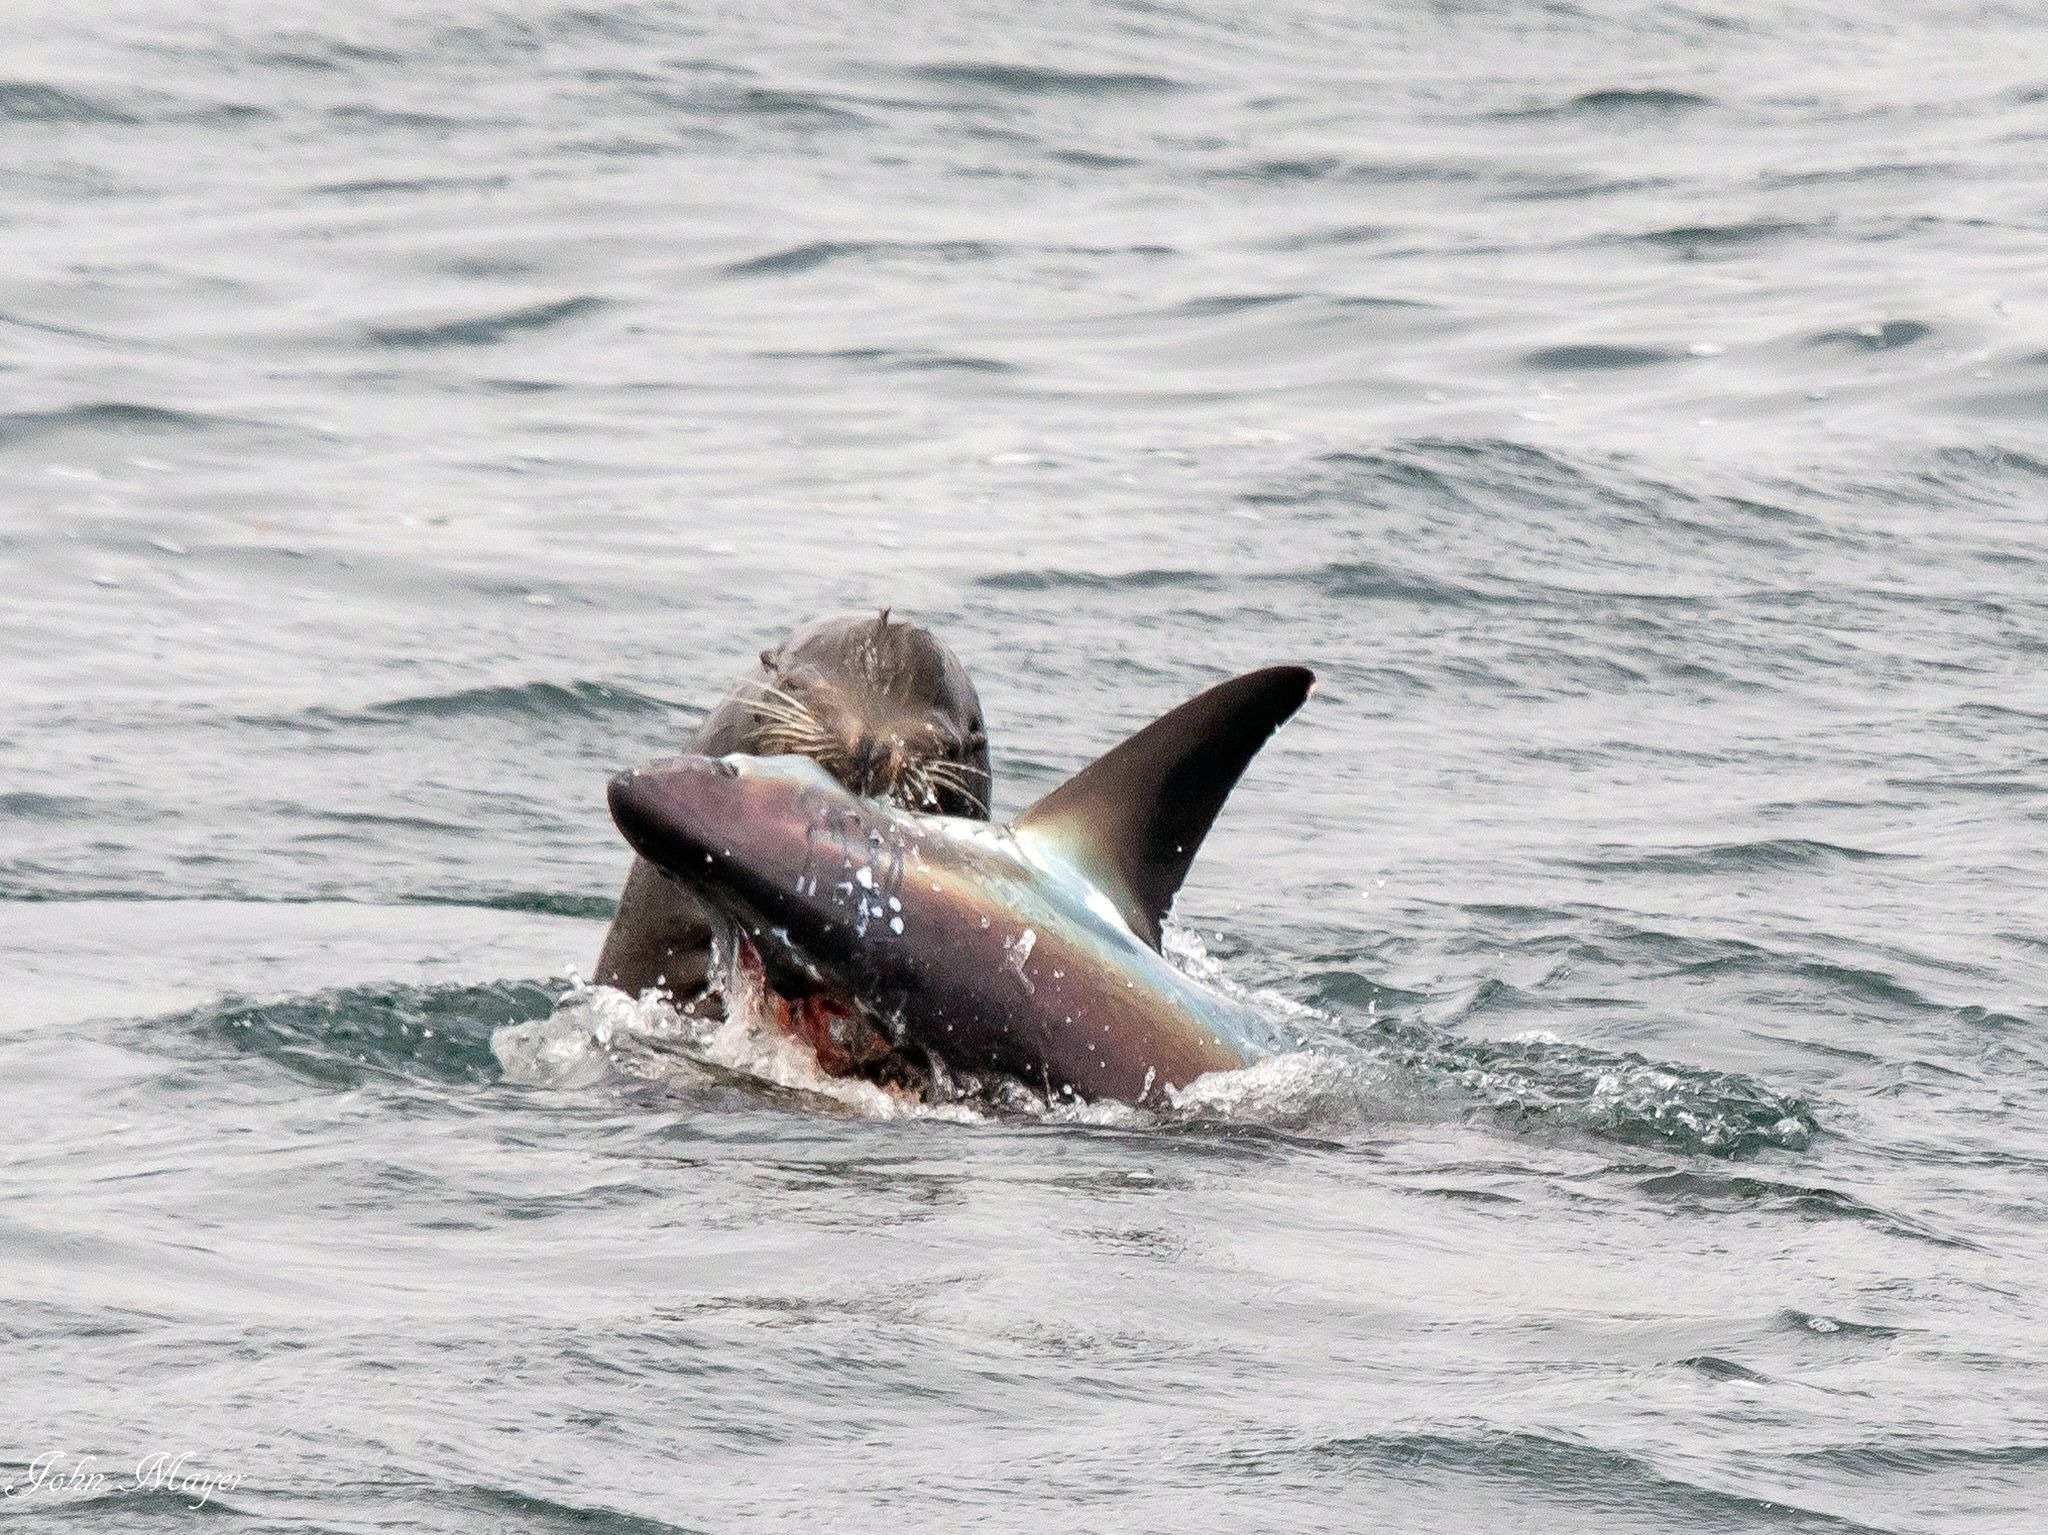 Newport Beach, CA: A sea lion attacks a thresher shark. This image is from Shark V. Predator. [Photo of the day - 八月 2017]